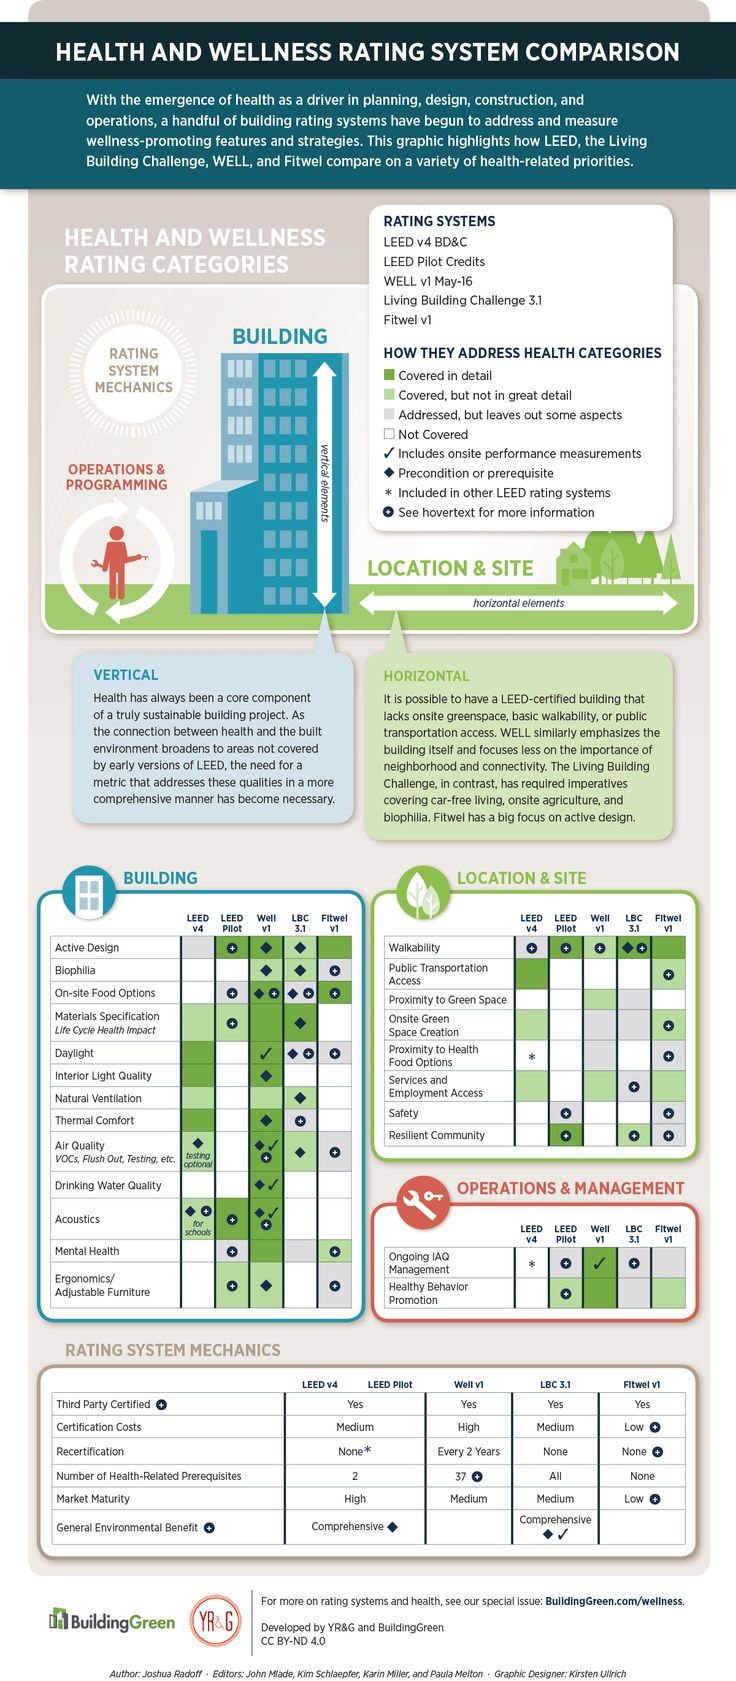 How do the different health & wellness rating systems stack up? Use our infographic as a quick reference!